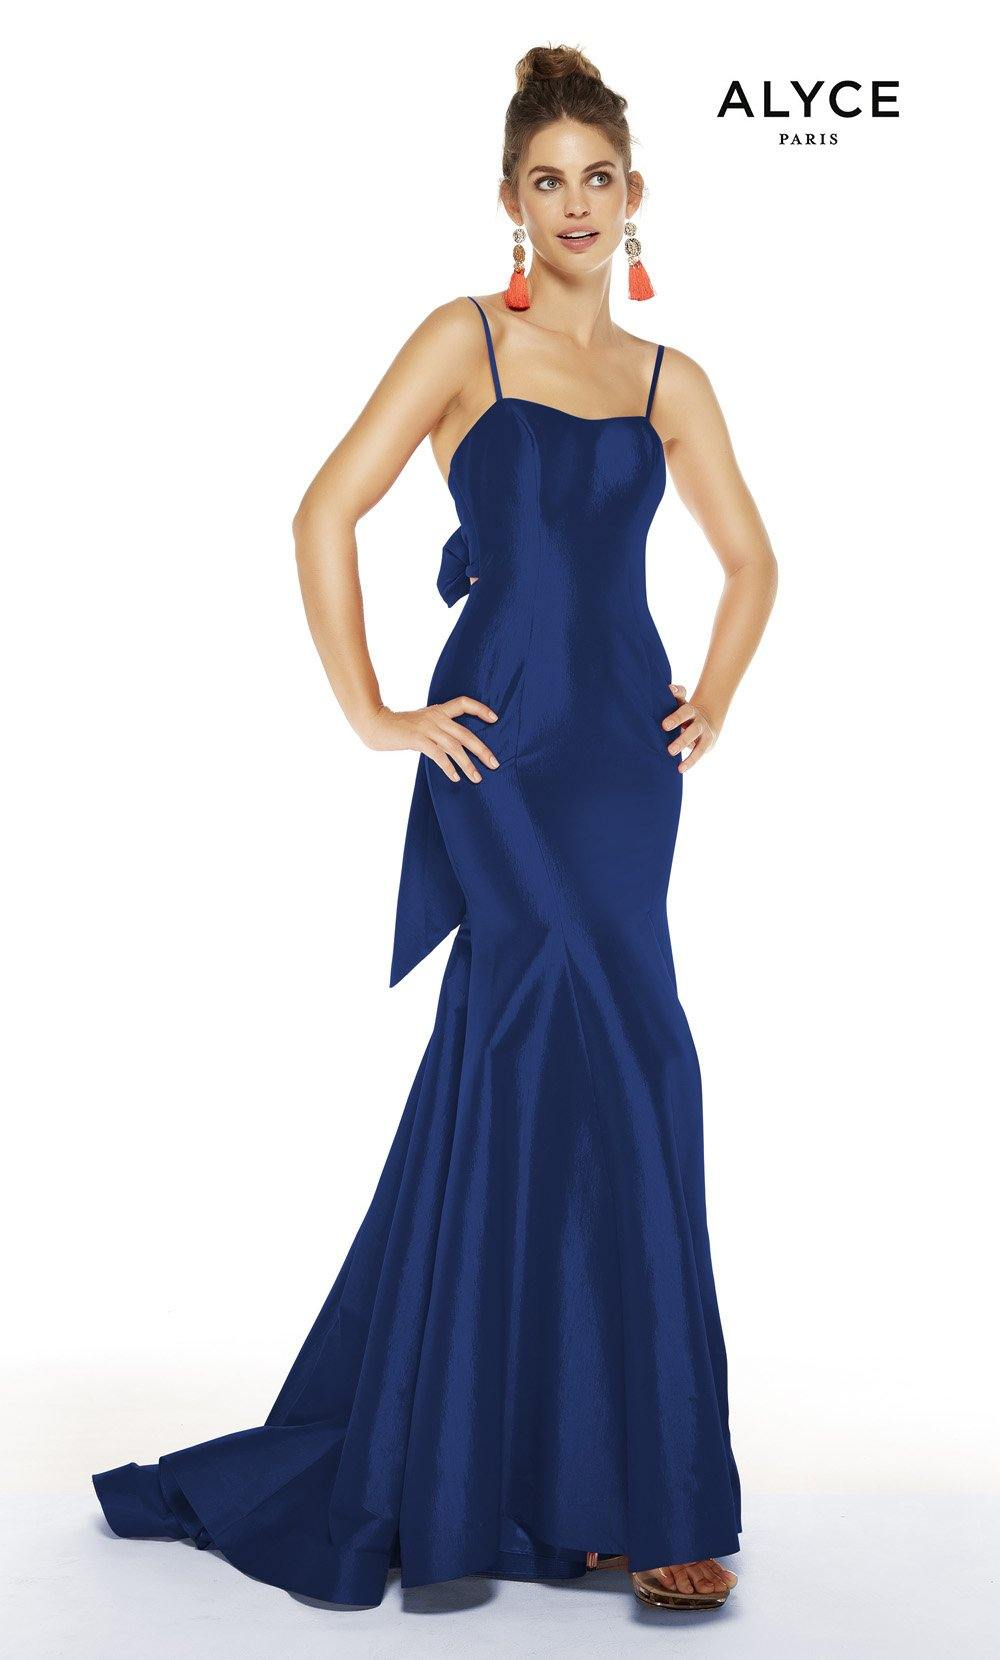 Royal formal dress with a squared neckline